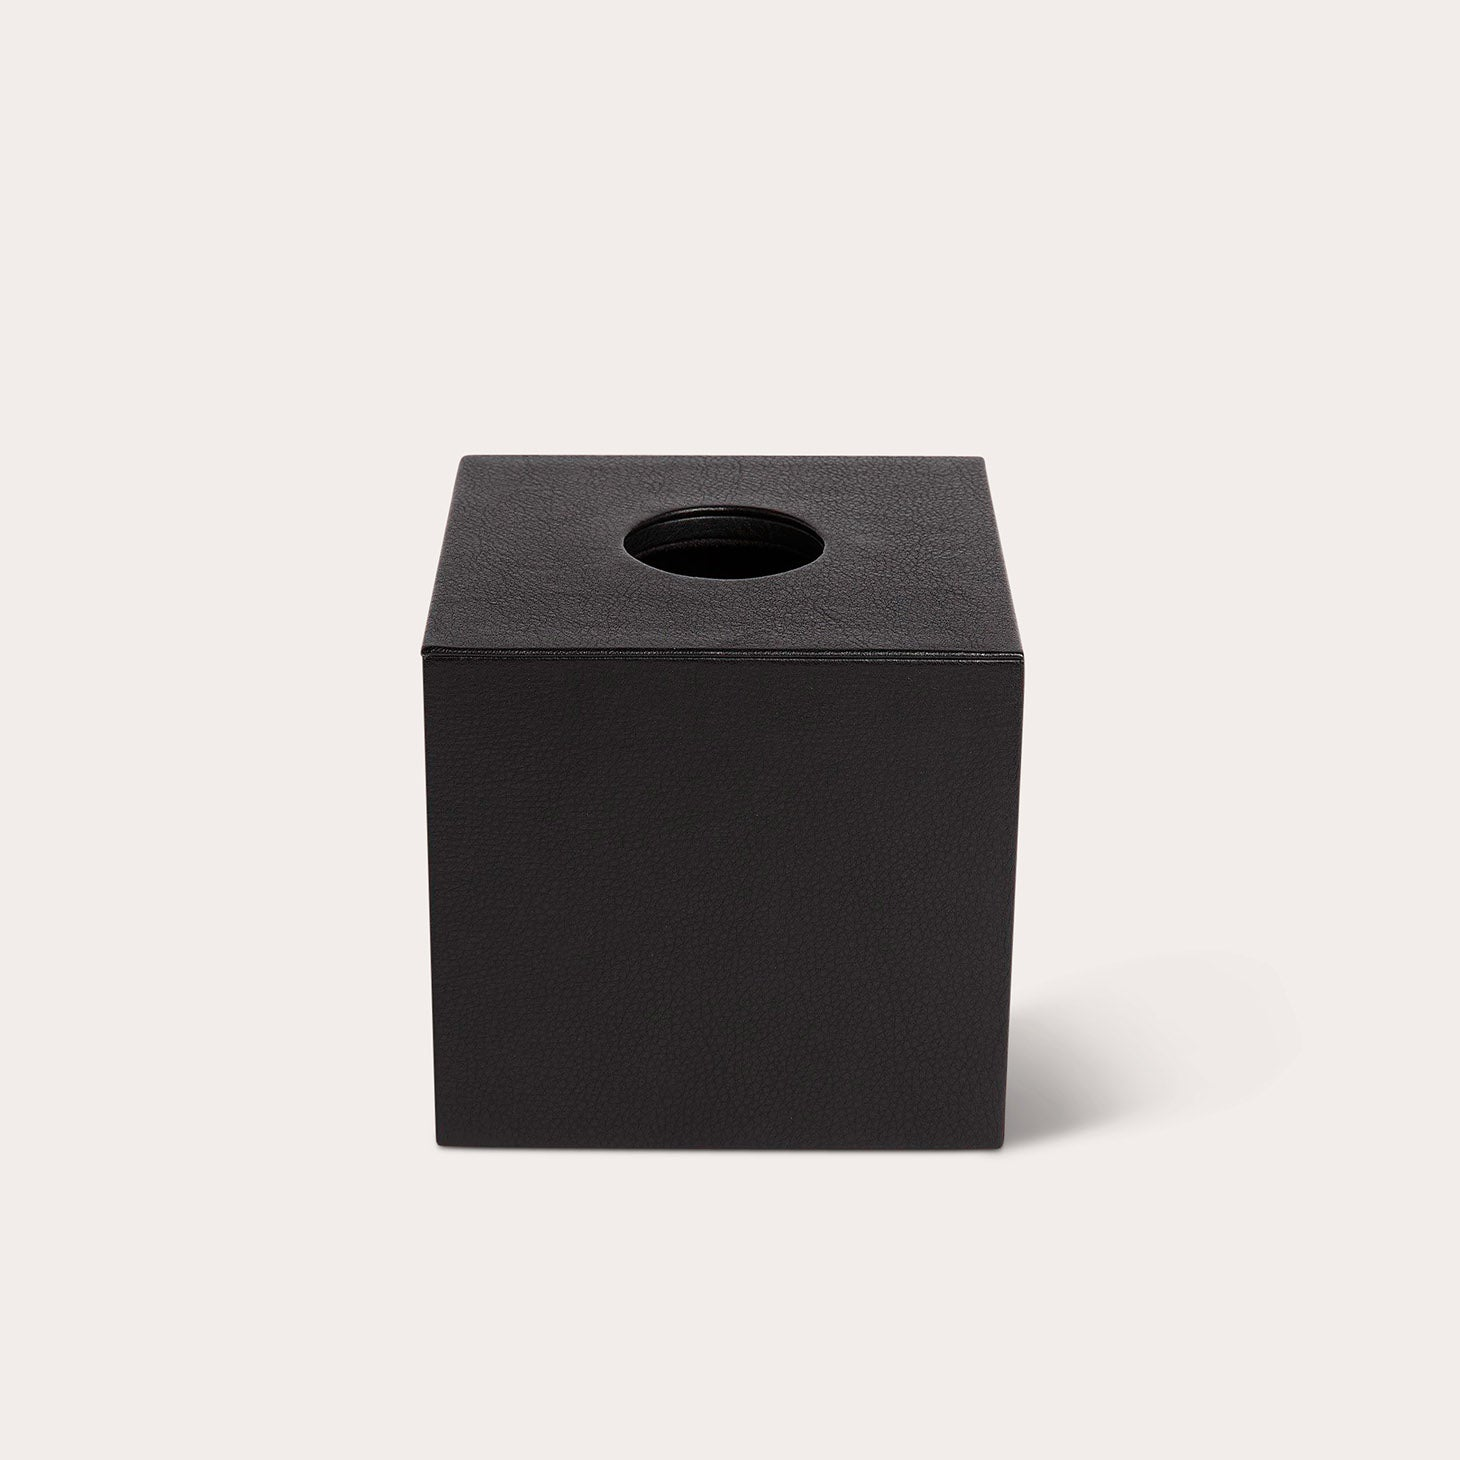 Niez Cube Accessories Michael Verheyden Designer Furniture Sku: 554-100-10383